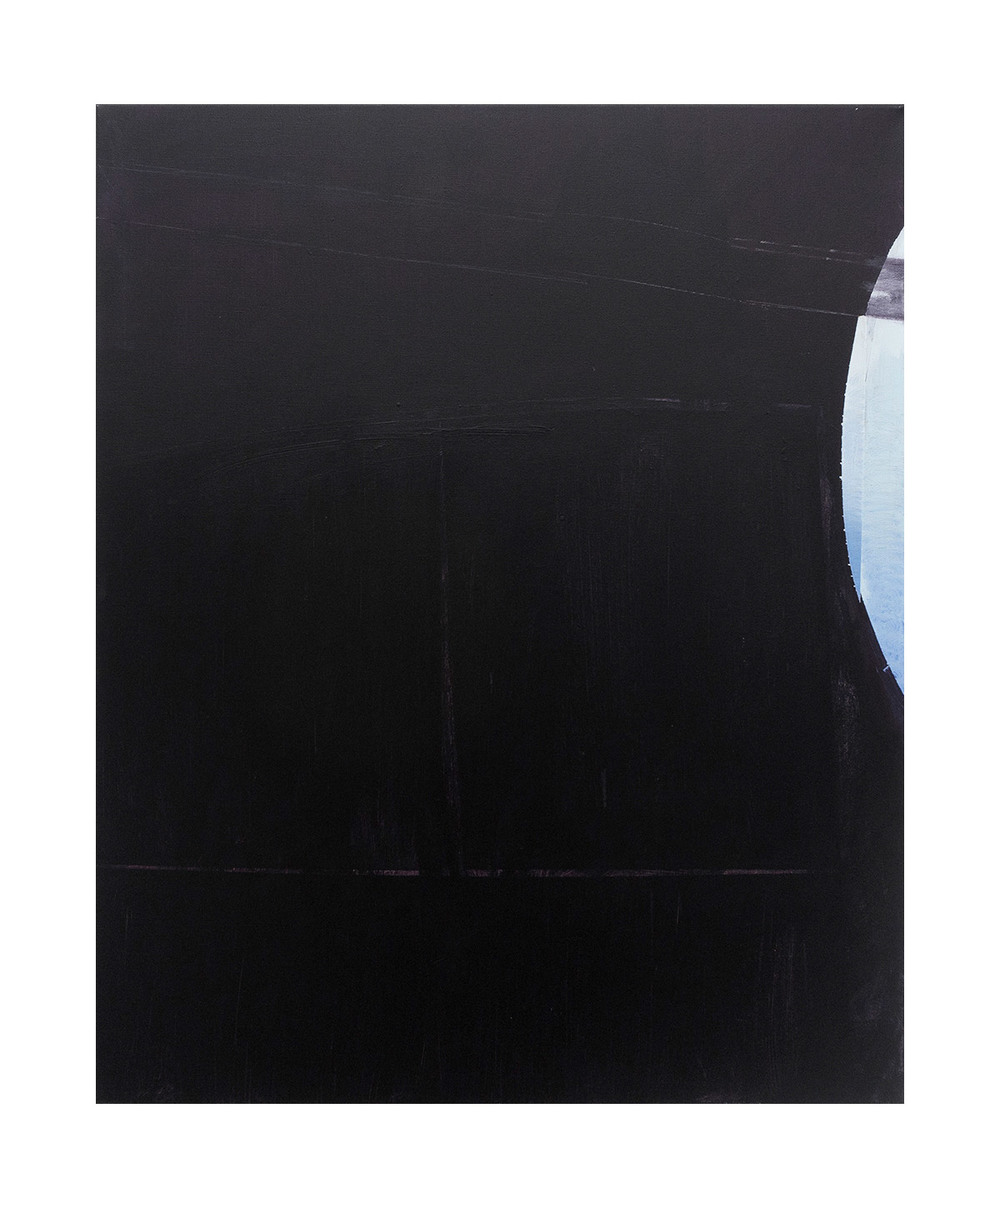 Untitled (black sail) 2014